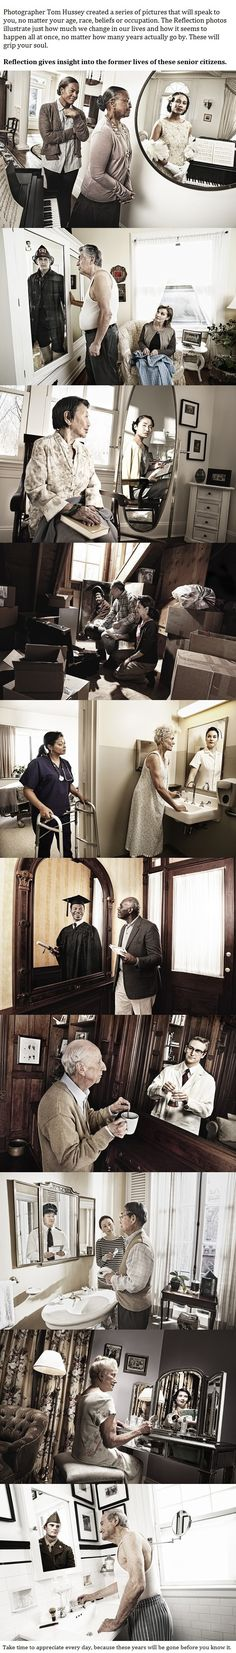 Reflection - When You Look Closely At These 10 Photos, You'll See Why They Mean So Much. My favorite is the woman being cared for by a nurse and in her reflection you can see she was once the nurse not the patient. I Smile, Make Me Smile, Break My Heart, Faith In Humanity Restored, To Infinity And Beyond, Photomontage, Looks Cool, Belle Photo, In This World